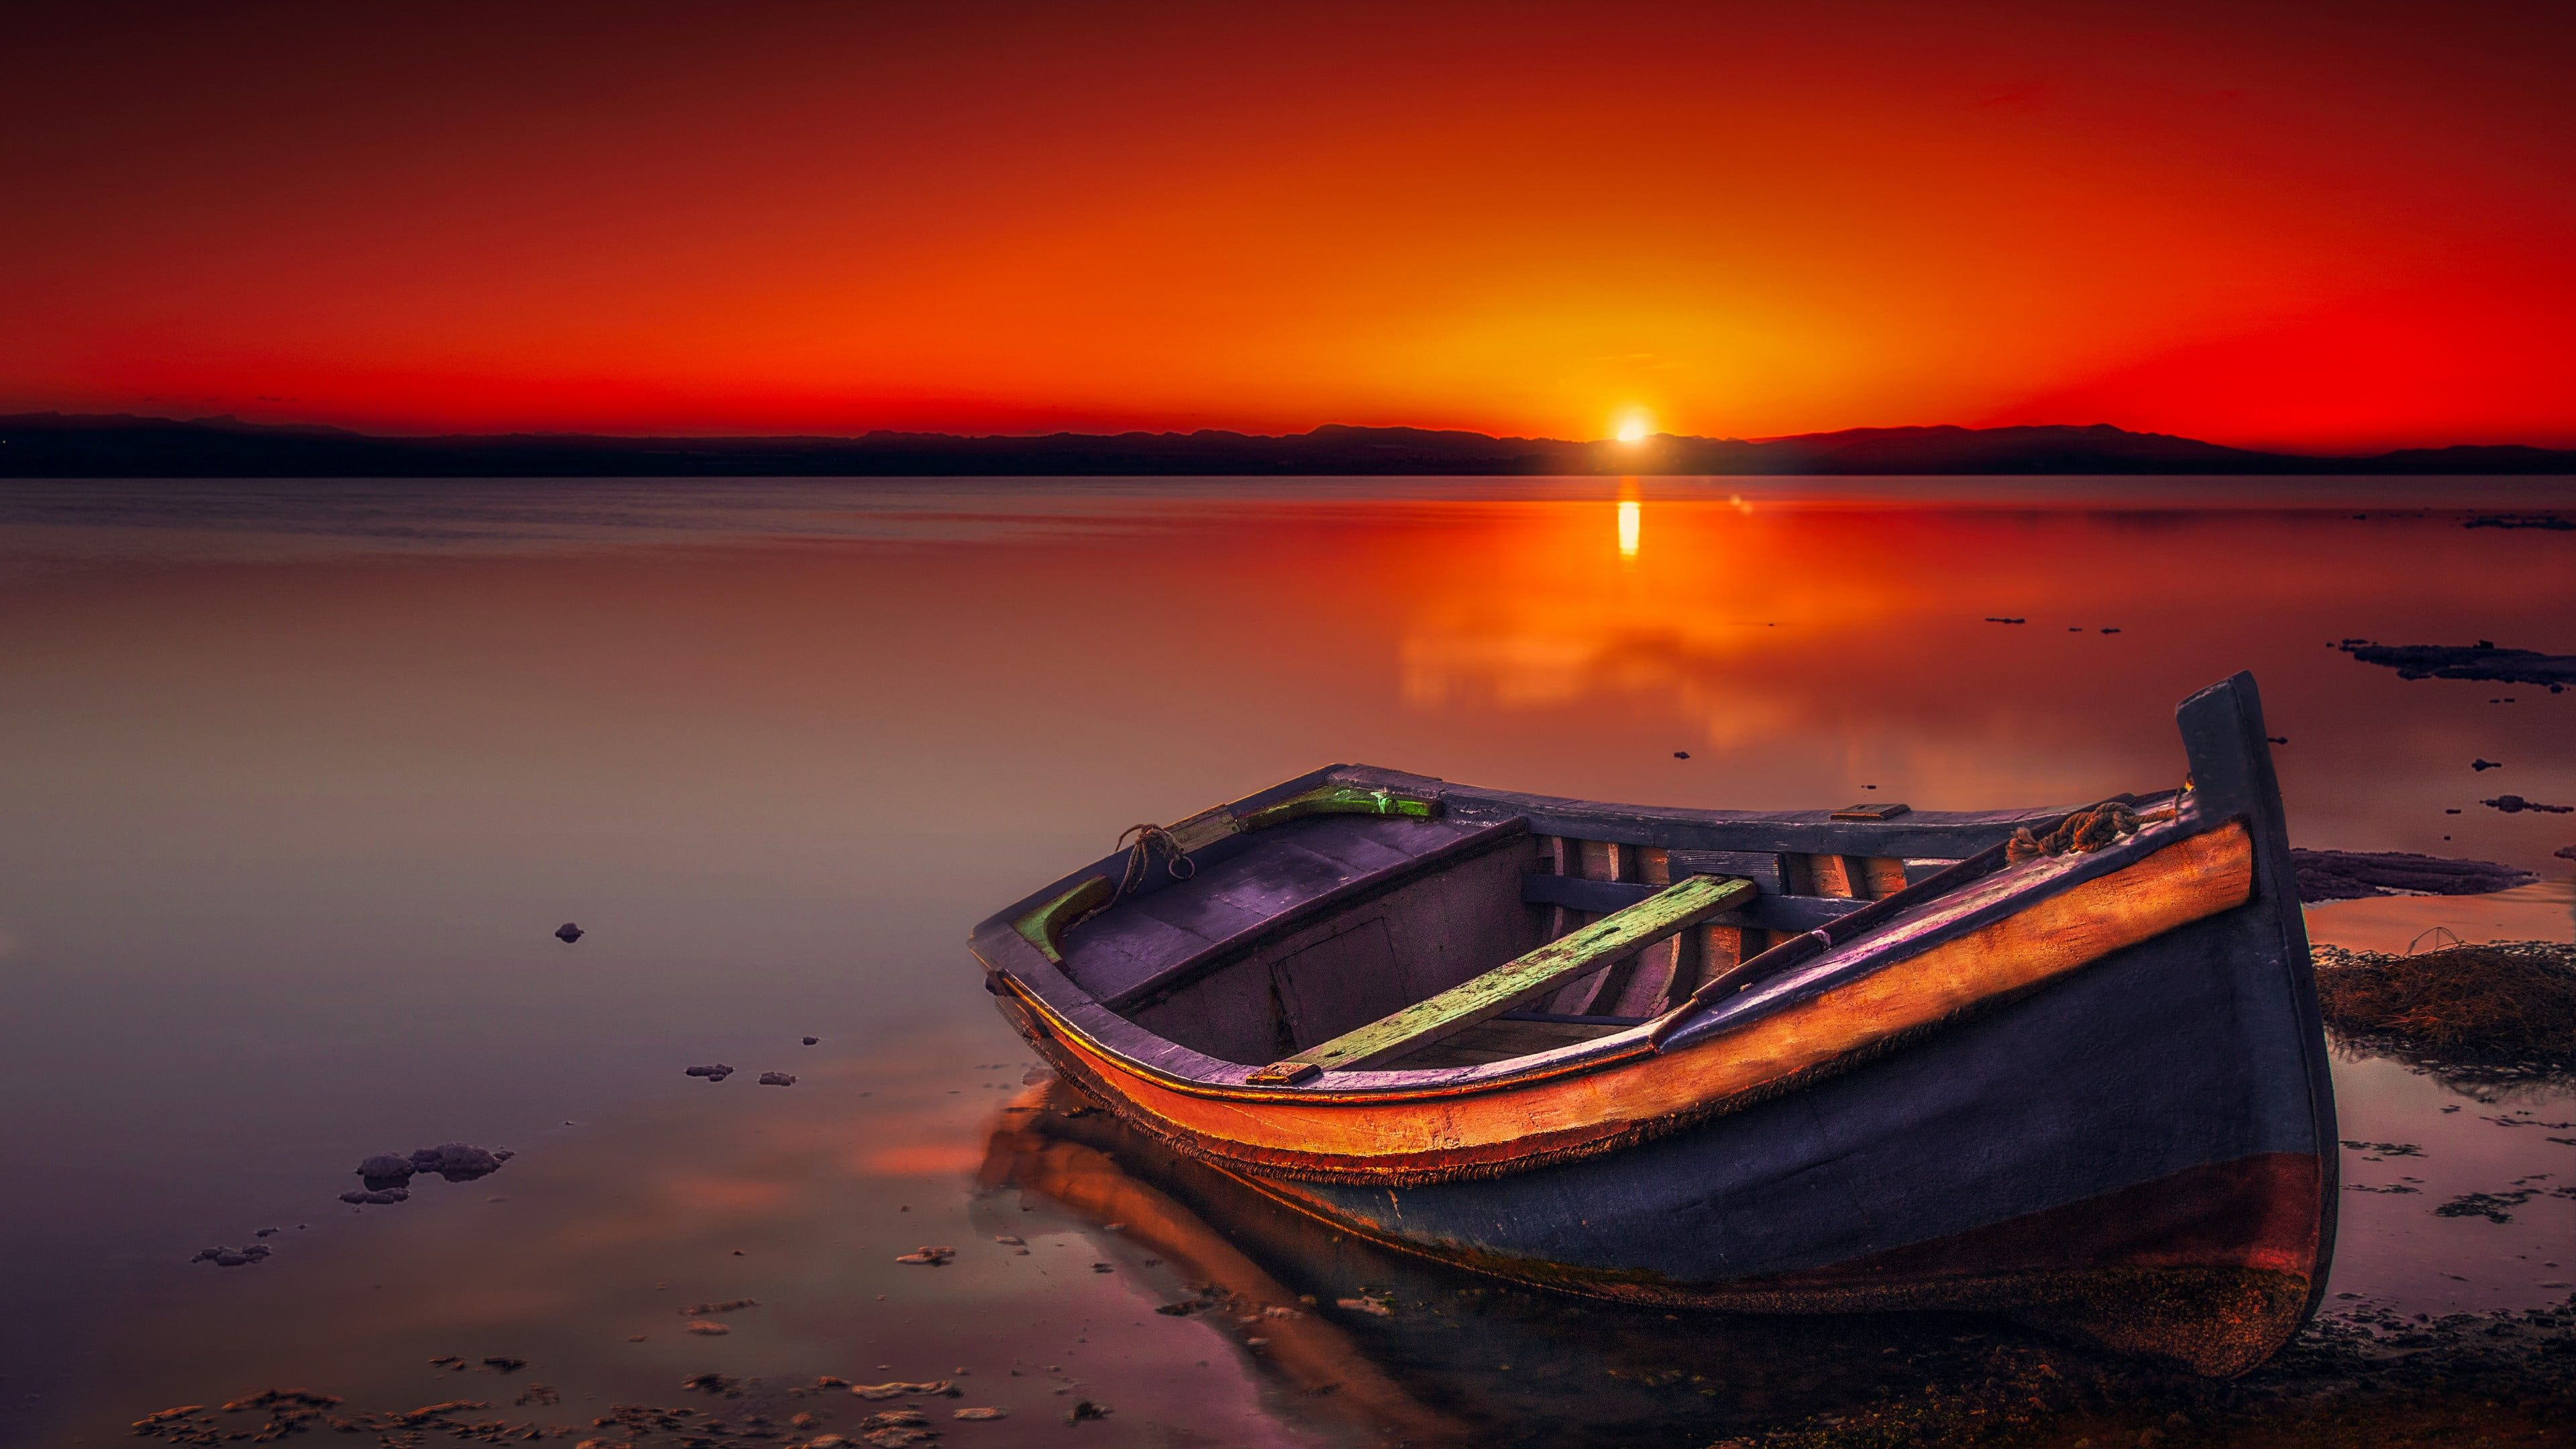 Boat Sunset Lake Horizon Calm Red Sky Red Sunset Afterglow Water Sky Shore Evening Sun Dusk 4k Wallpaper Hdw Sunset Wallpaper Red Sky Red Sunset Wallpaper sunset lake ice evening sky